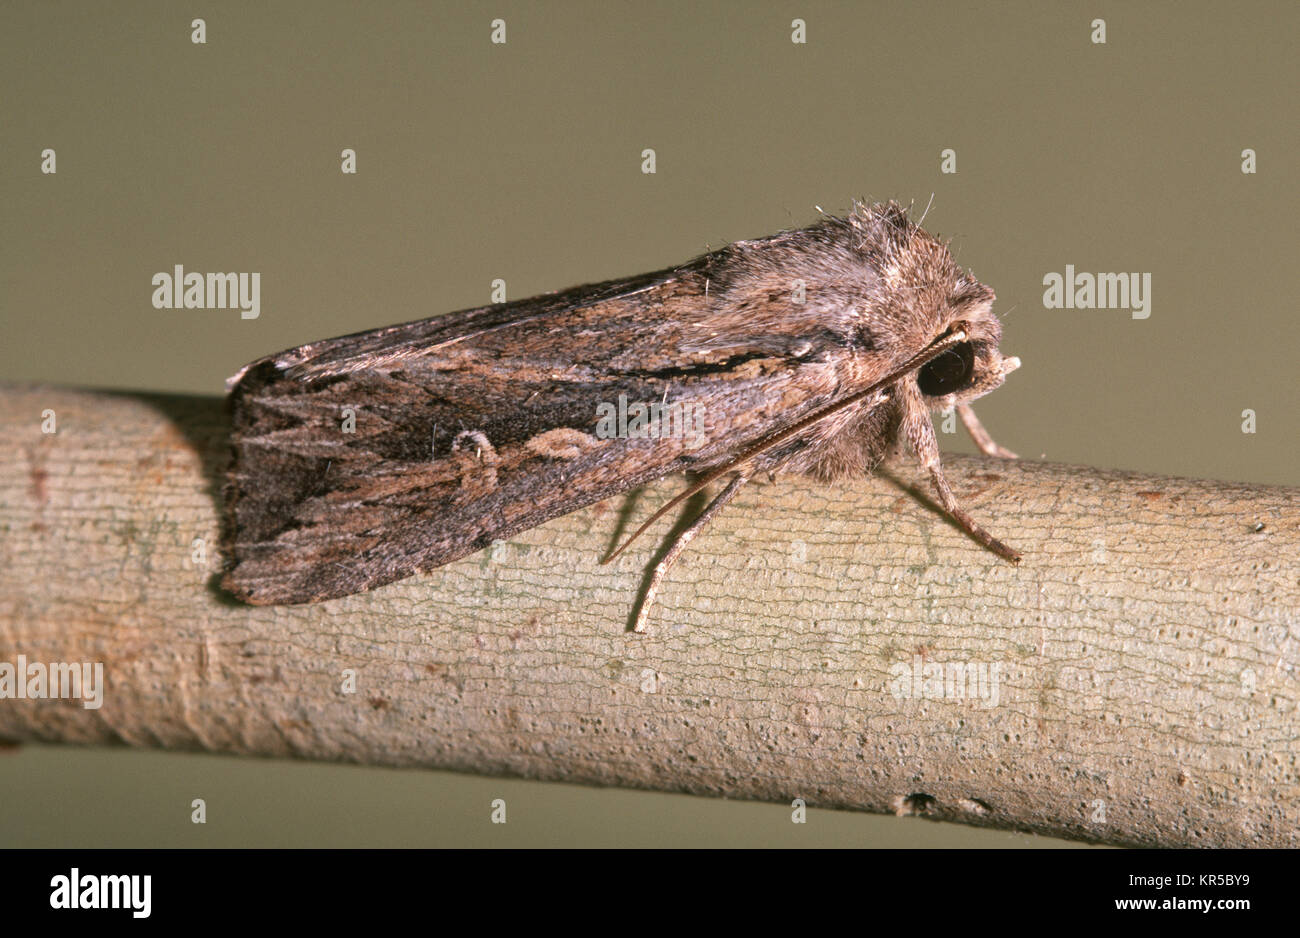 Inland Armyworm moth (Persectania dyscrita) - Stock Image